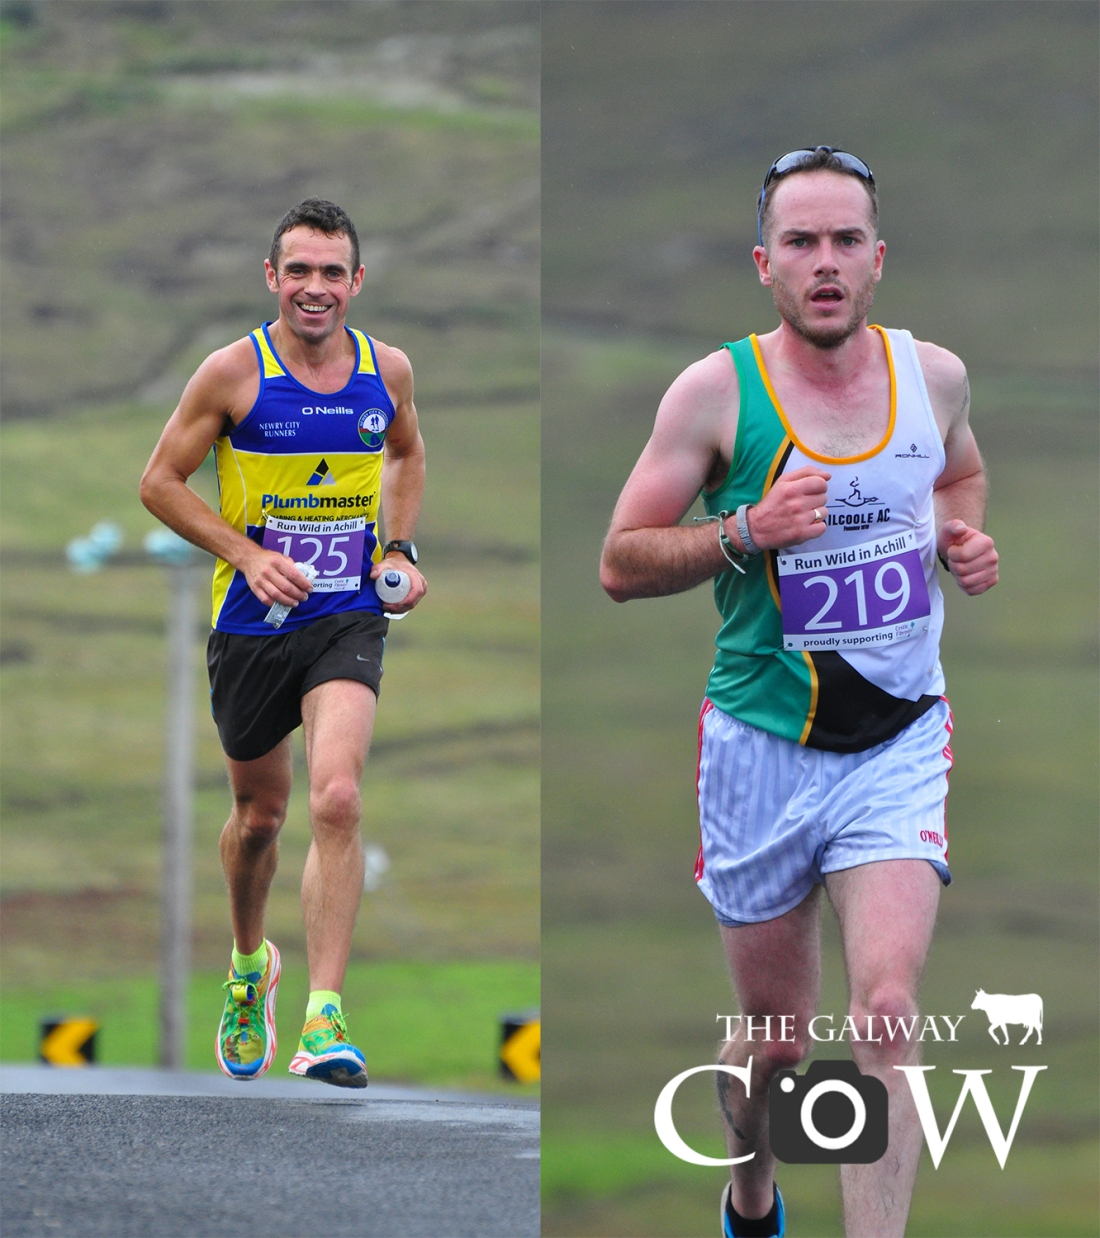 Achill Ultra Back 2 Back Saturday Photos.jpg